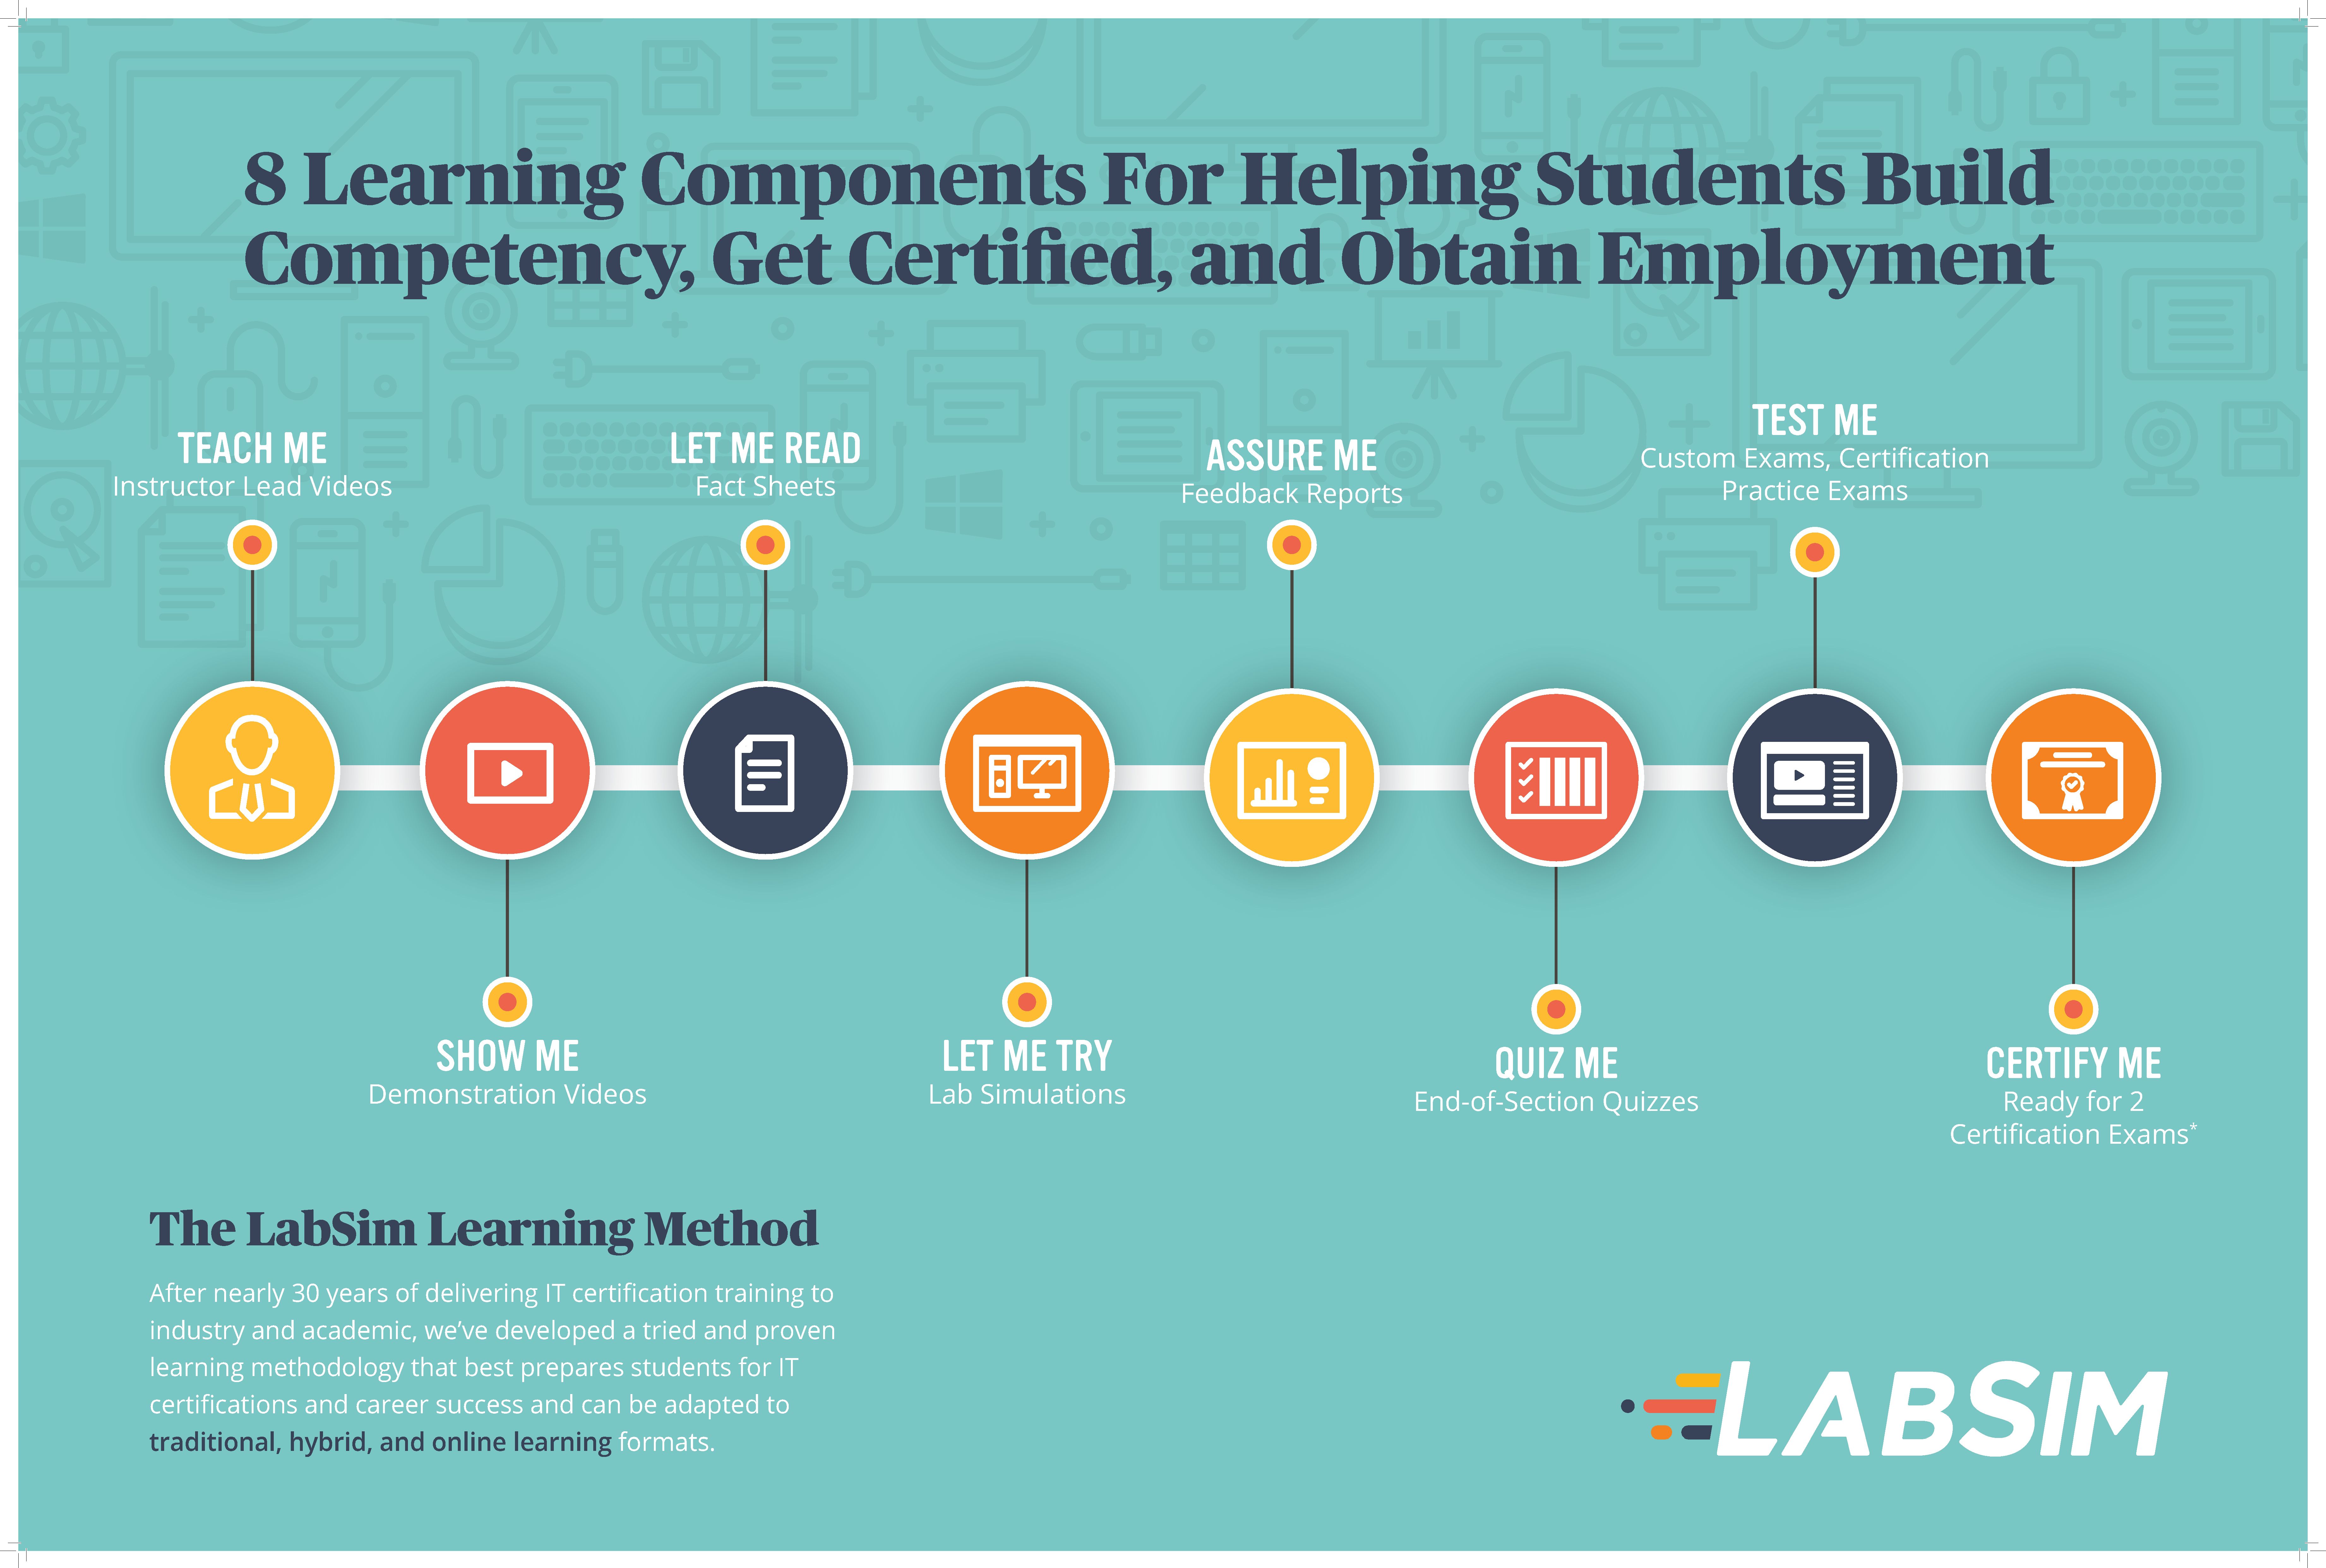 2020-8LearningComponents-Poster-V1BW.png